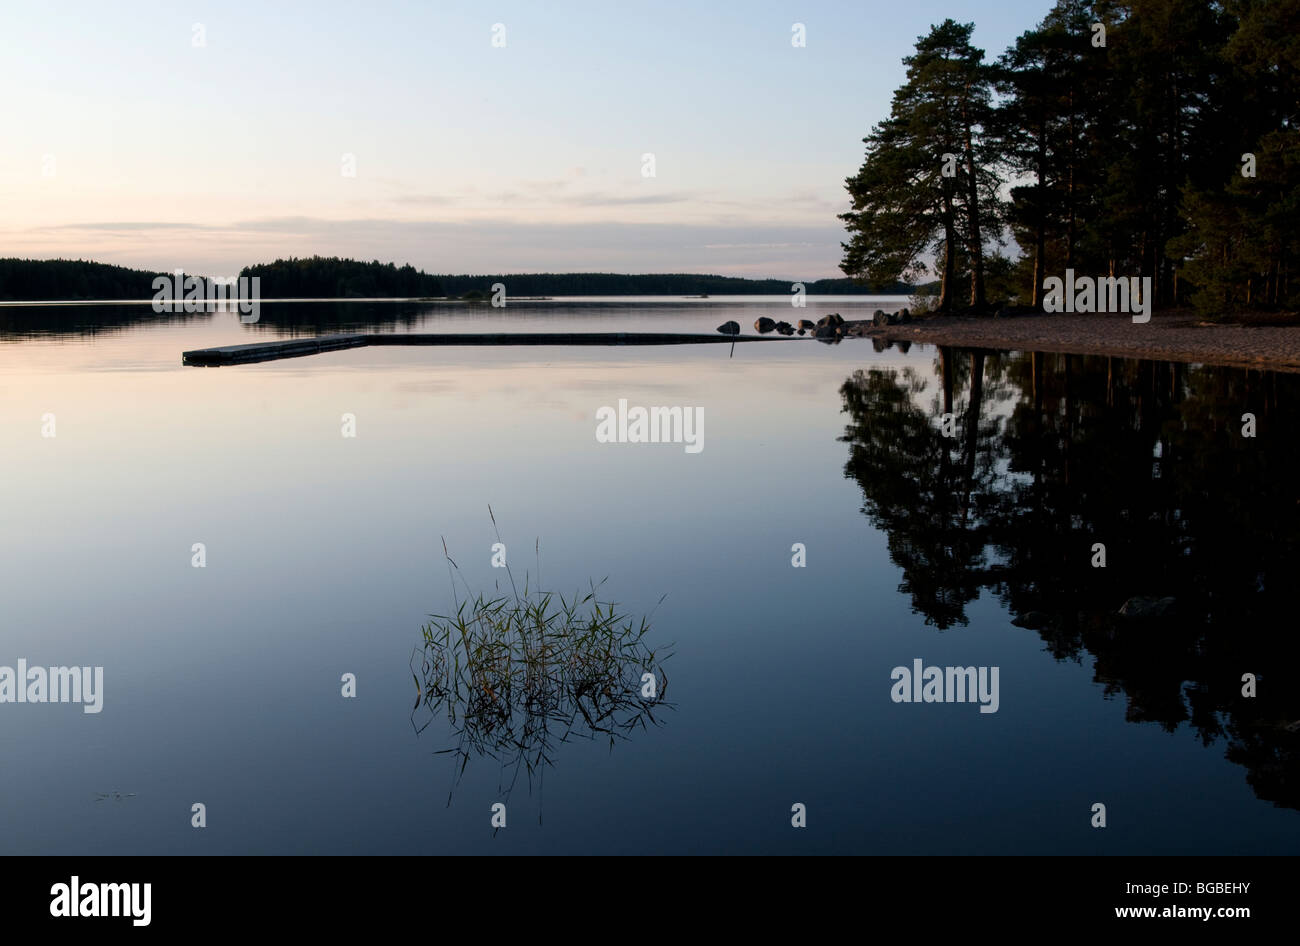 Färnebofjärden National Park in Sweden, Västmanland, Dalarna Stock Photo